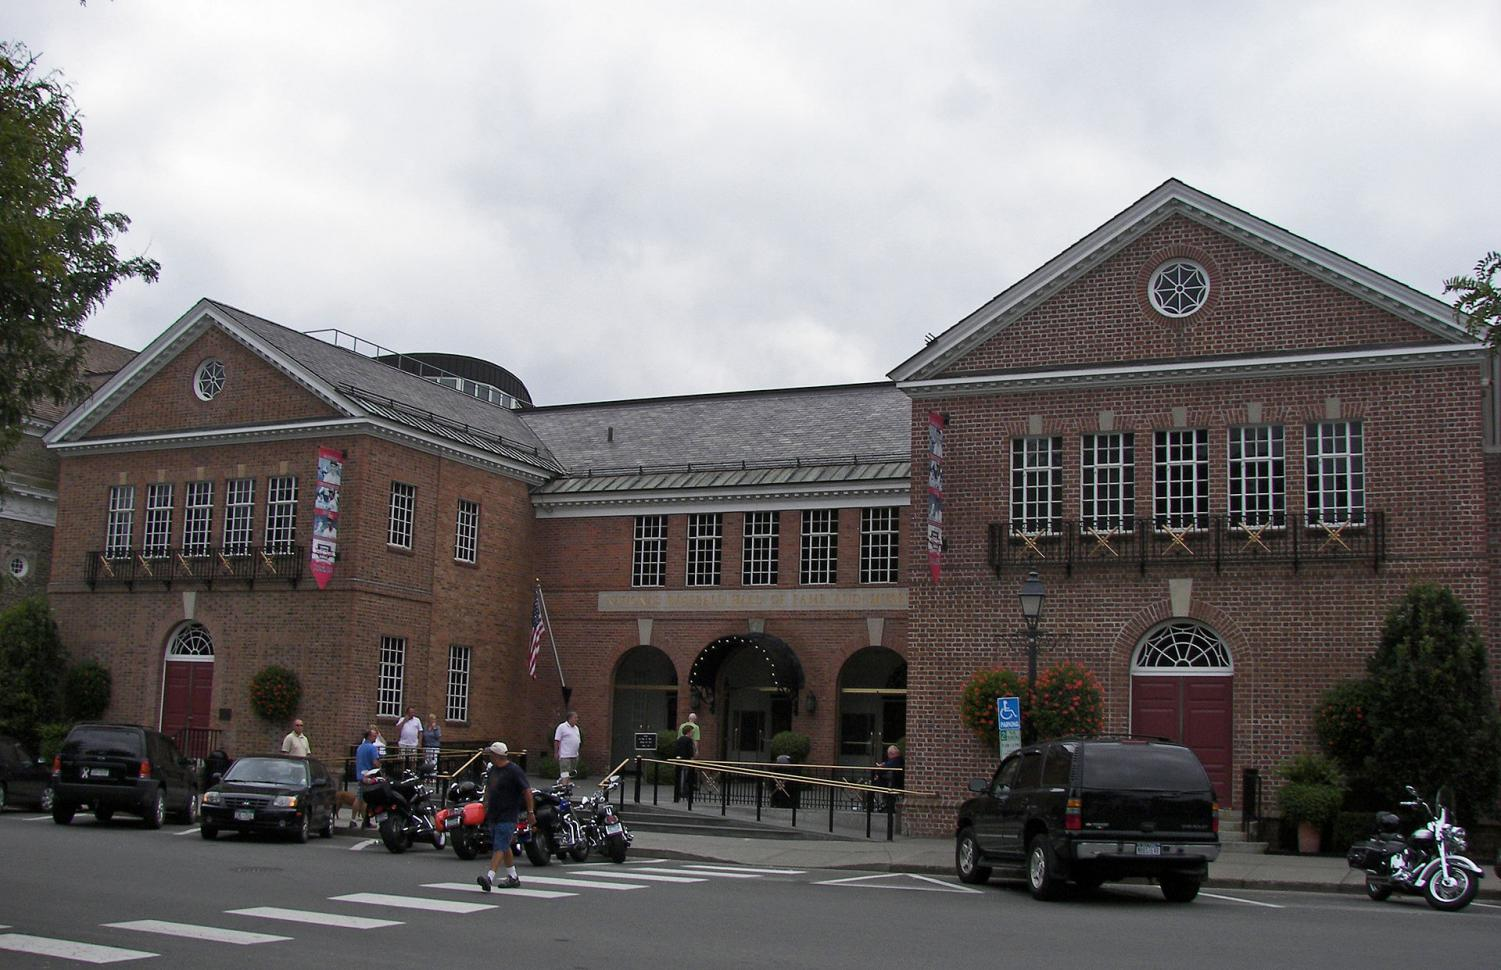 The Baseball Hall of Fame in Cooperstown, New York. Photo credit: Photo via Wikimedia Commons under Creative Commons license.